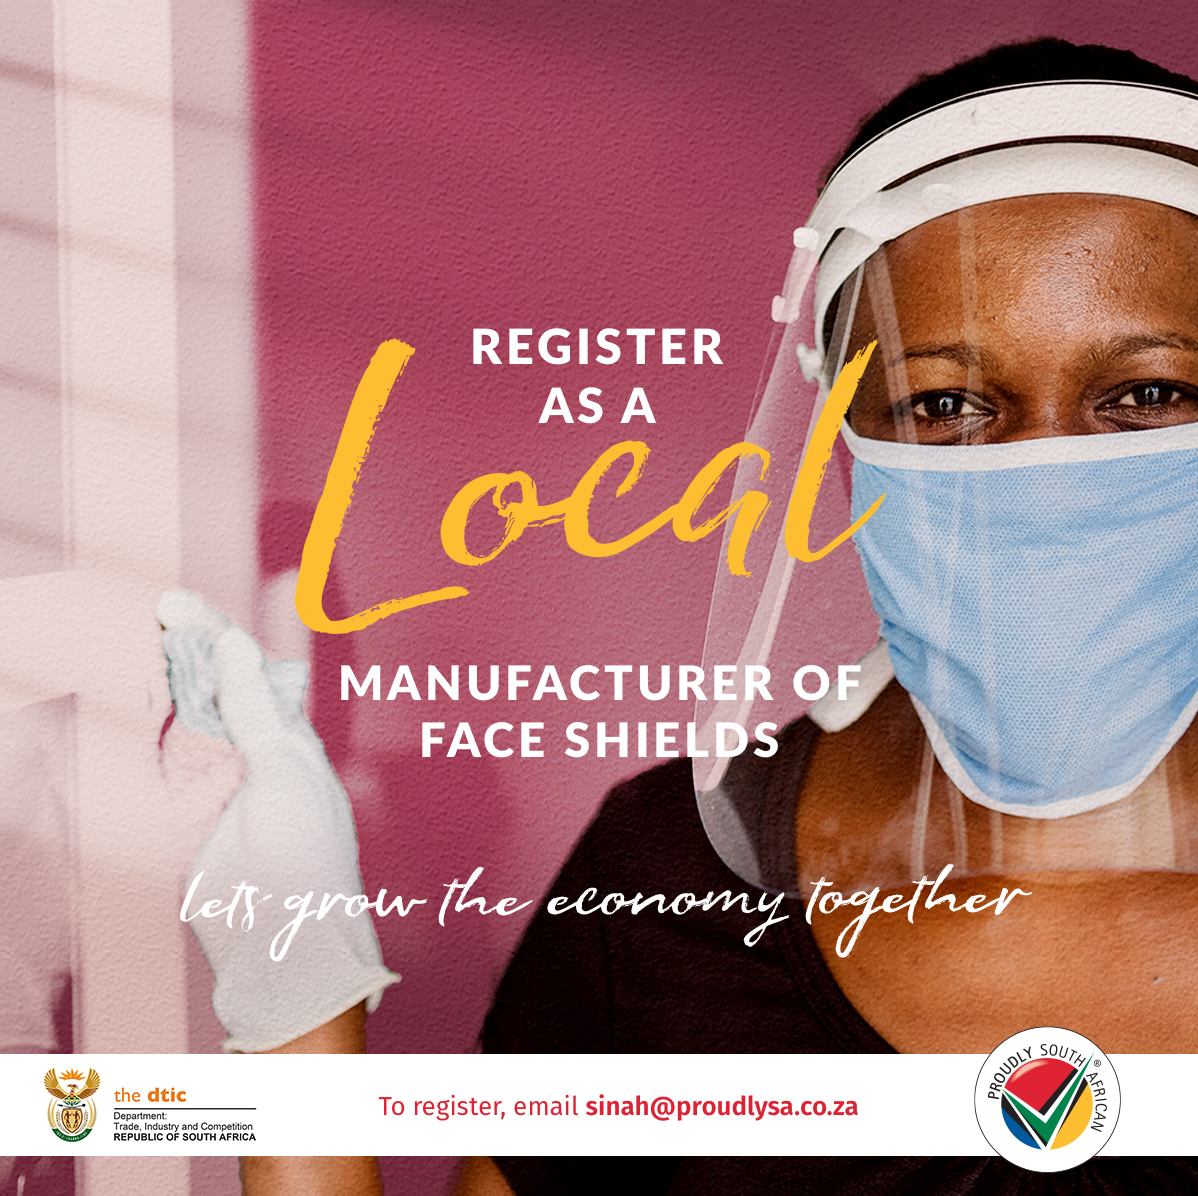 Proudly SA is calling on all local manufacturers of face shields to list as a supplier on our dedicated PPE portal, where buyers can source compliant, approved, locally manufactured face shields/ visors. Register via https://t.co/GxC6OWX34h #BuyLocalToCreateJobs  #BuySouthAfrican https://t.co/O2Nj1LUpU4